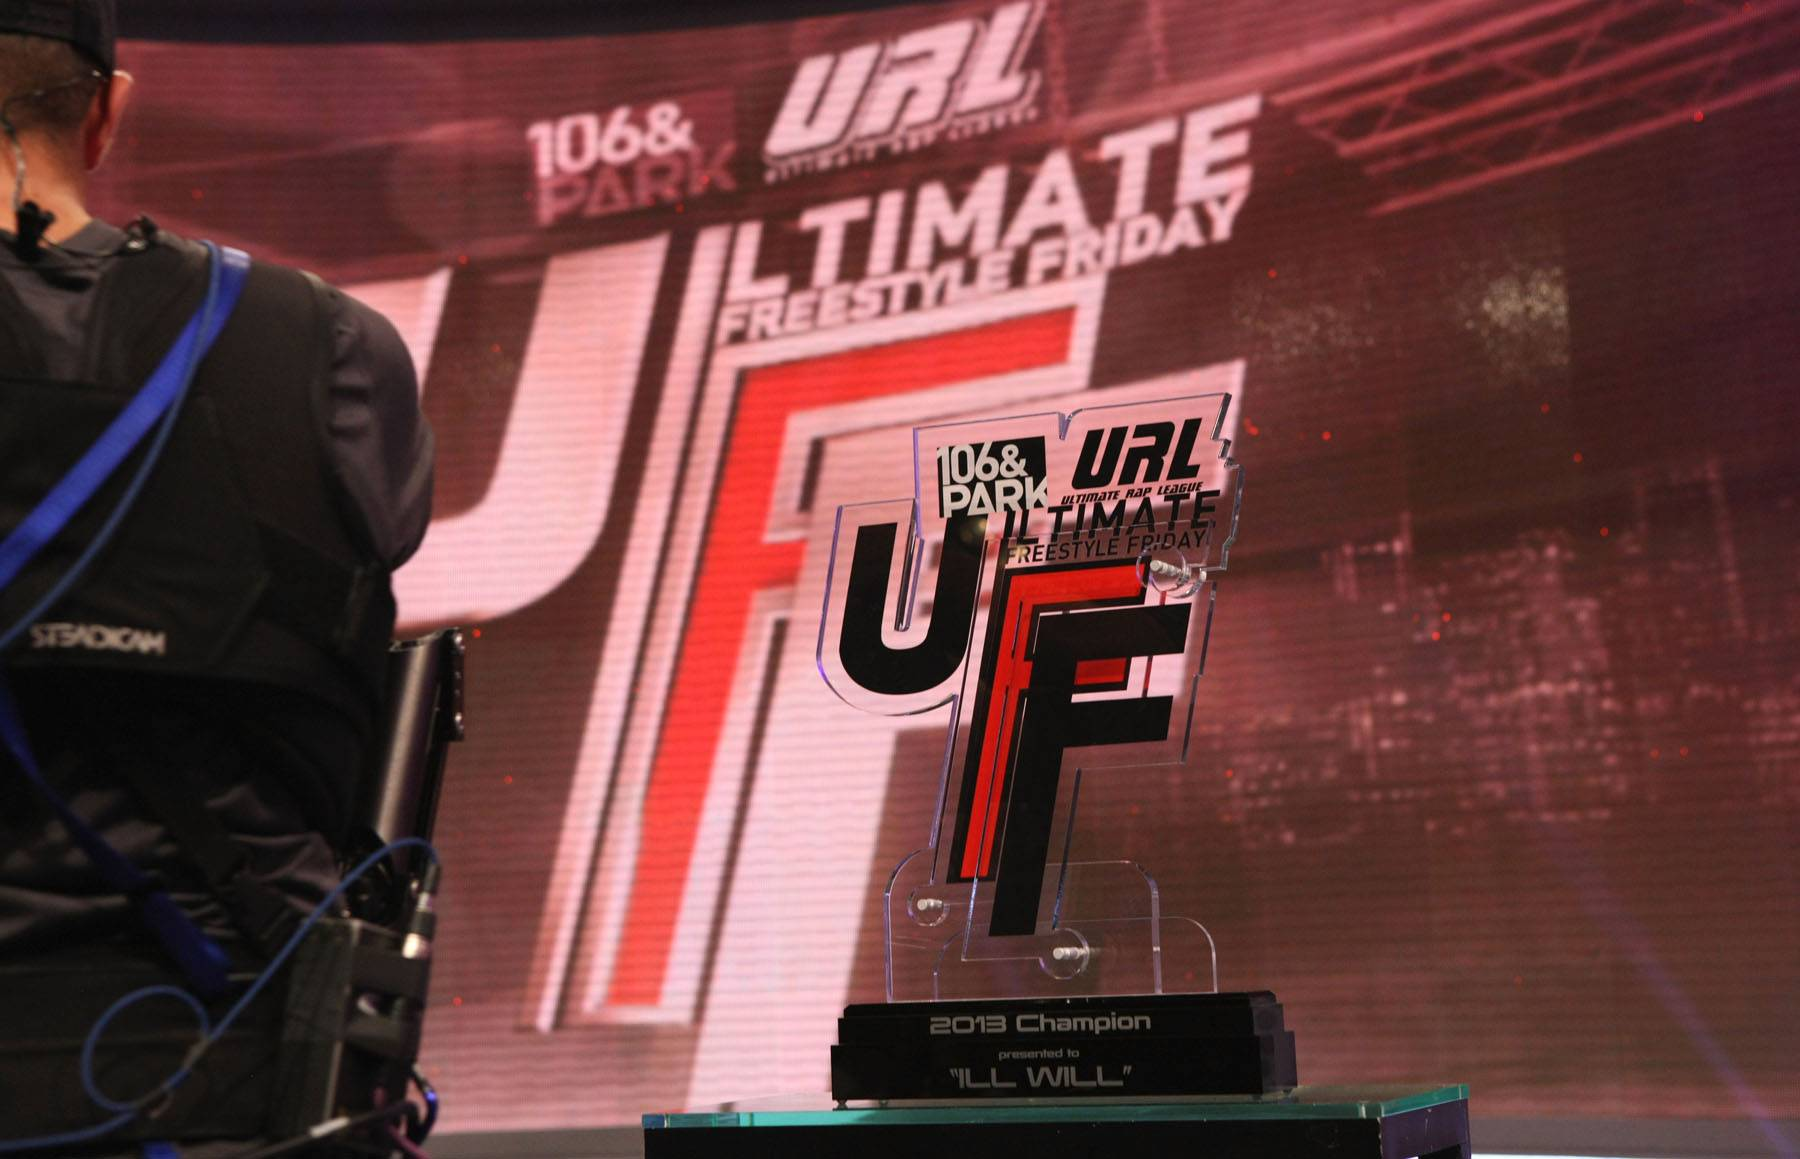 Ultimate Freestyle Friday - The Freestyle Friday trophy is presented. Who's going to win it? (Photo: John Ricard / BET)